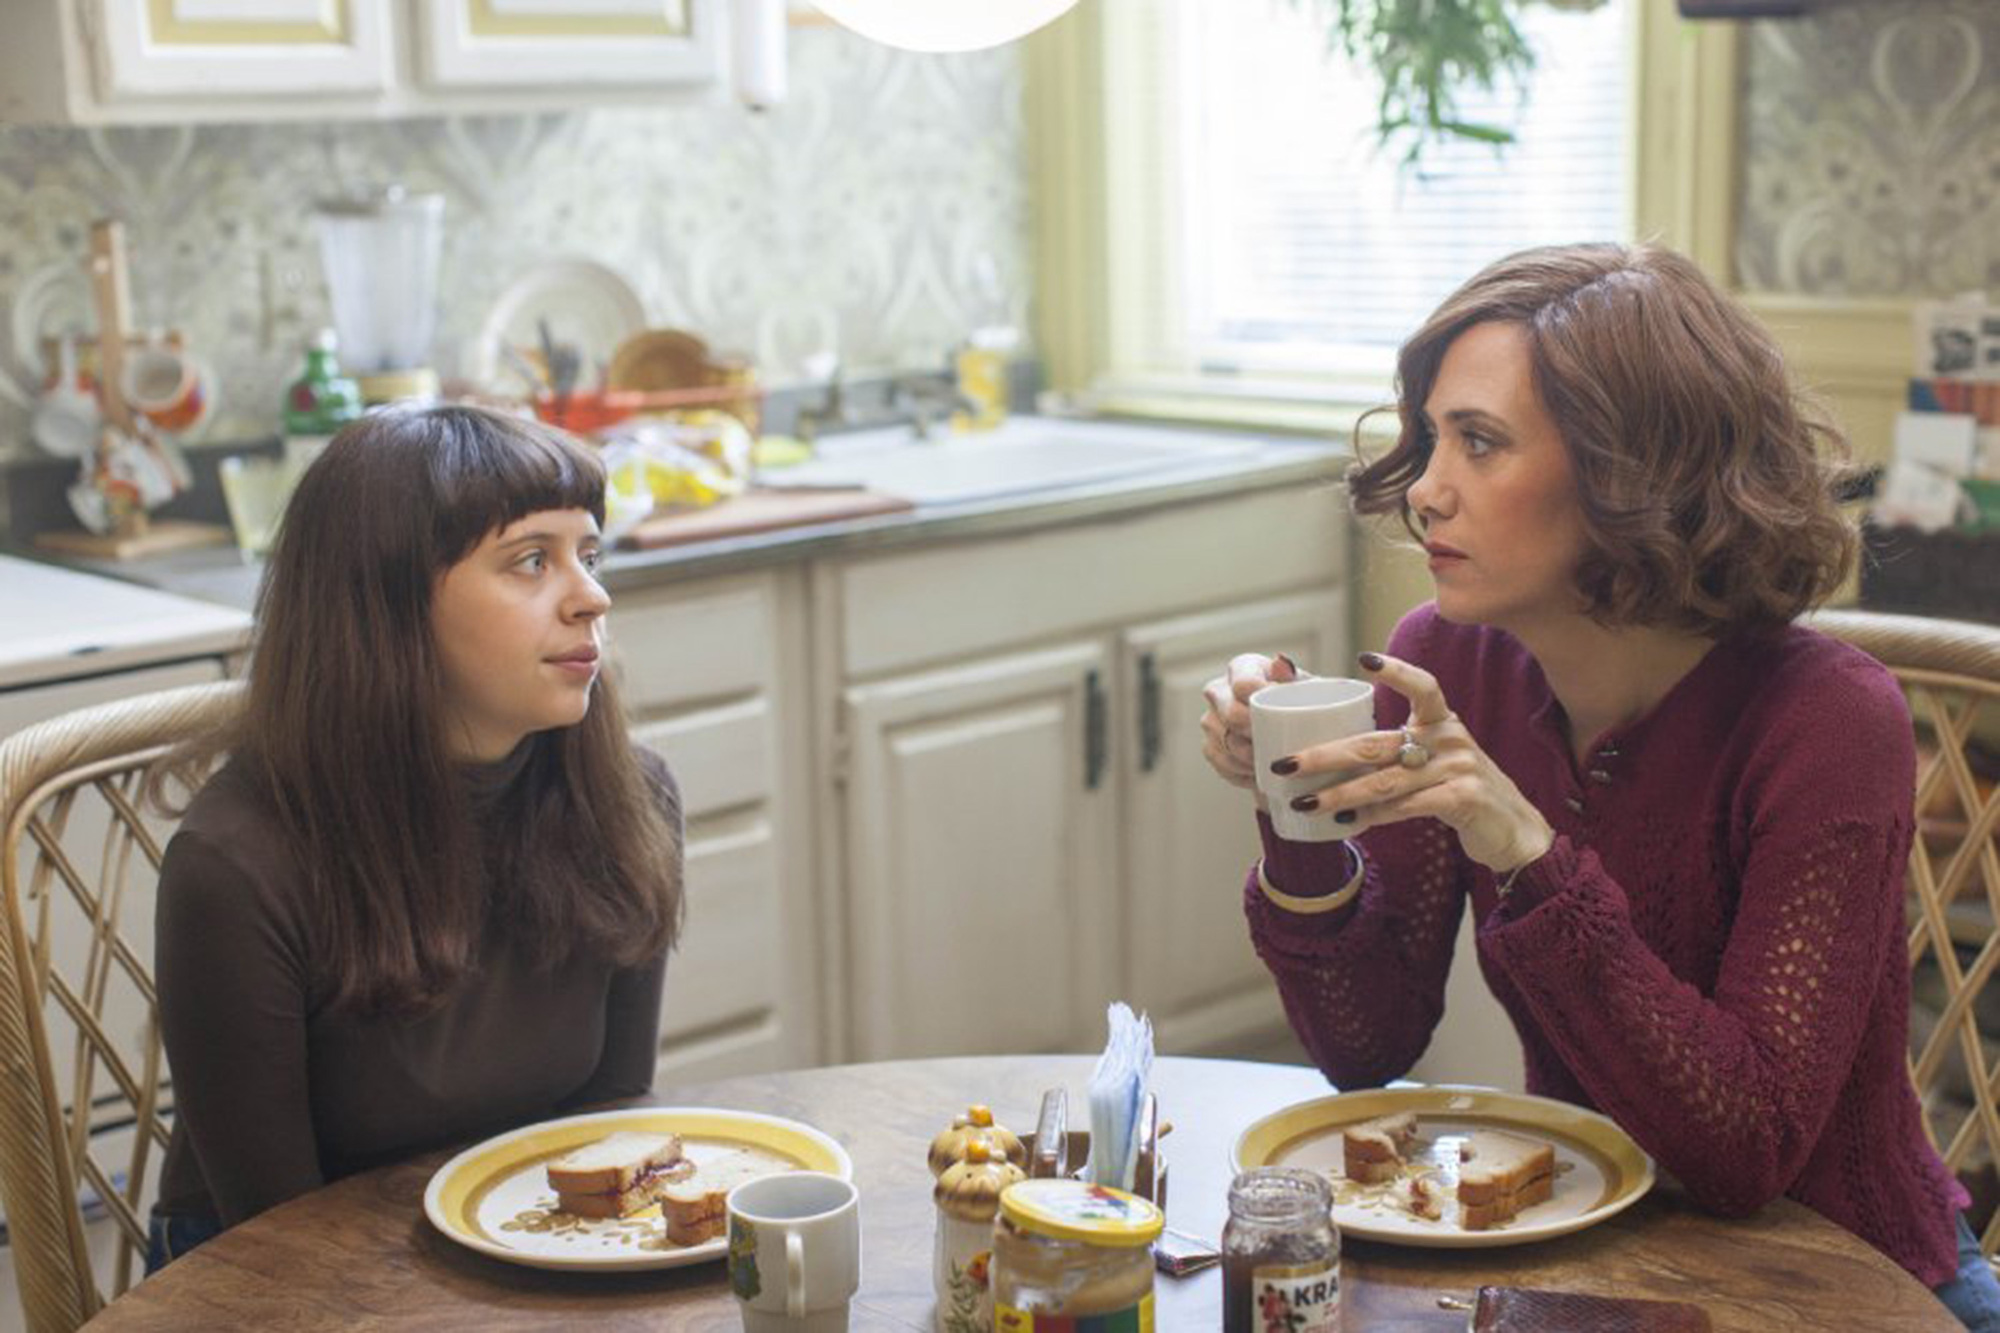 Kristen Wiig, right, and Bel Powley in 'The Diary of a Teenage Girl.'